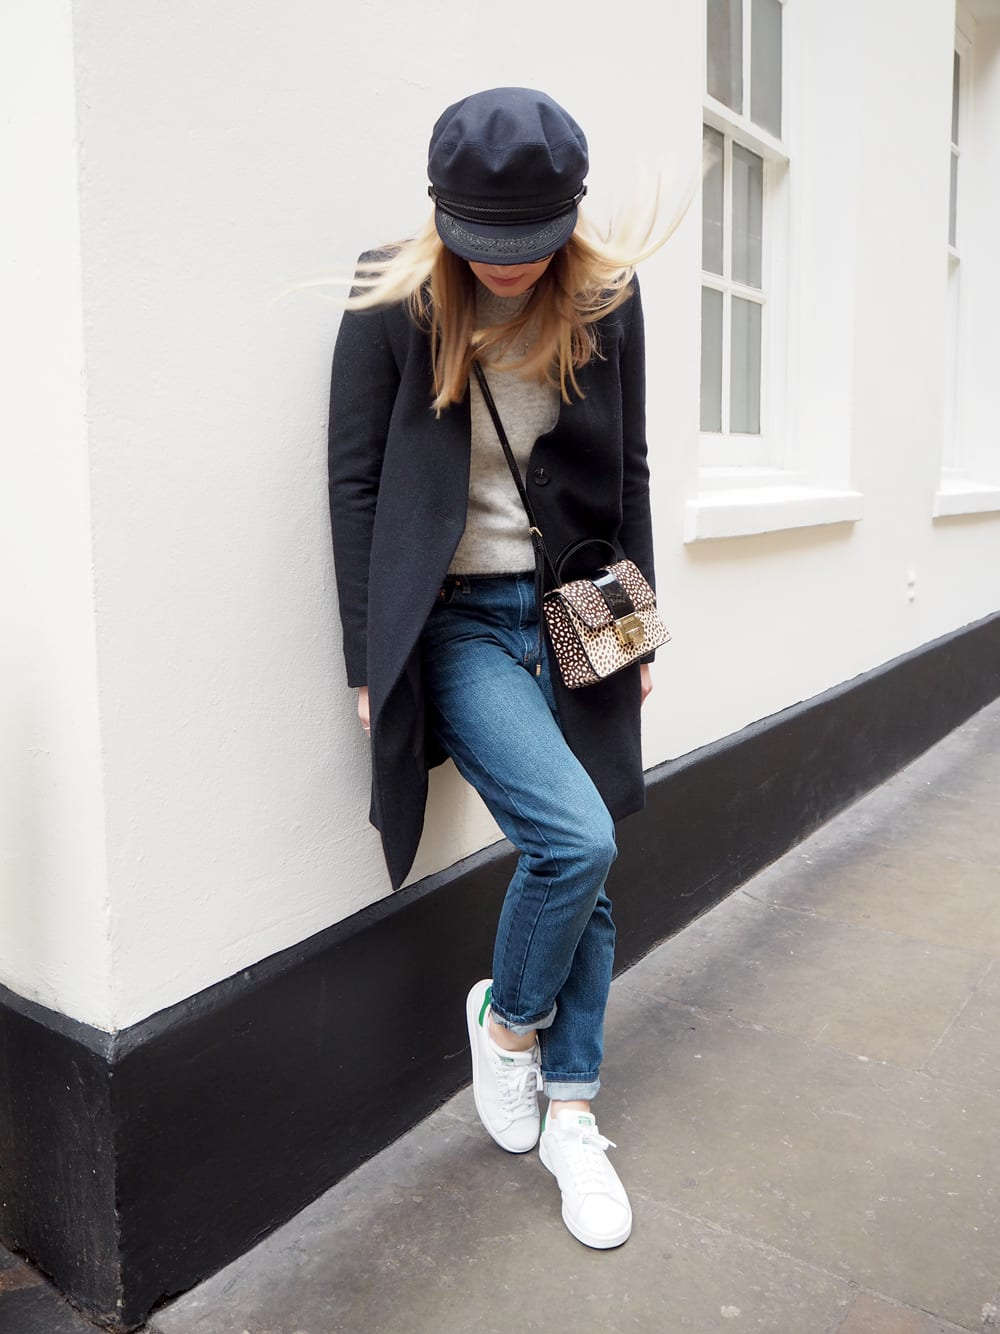 Style&Minimalism | It's Personal | Wearing Samsøe Coat, Isabel Marant Étoile Jeans, Jimmy Choo Rebel Bag, Saint James Mariner Cap